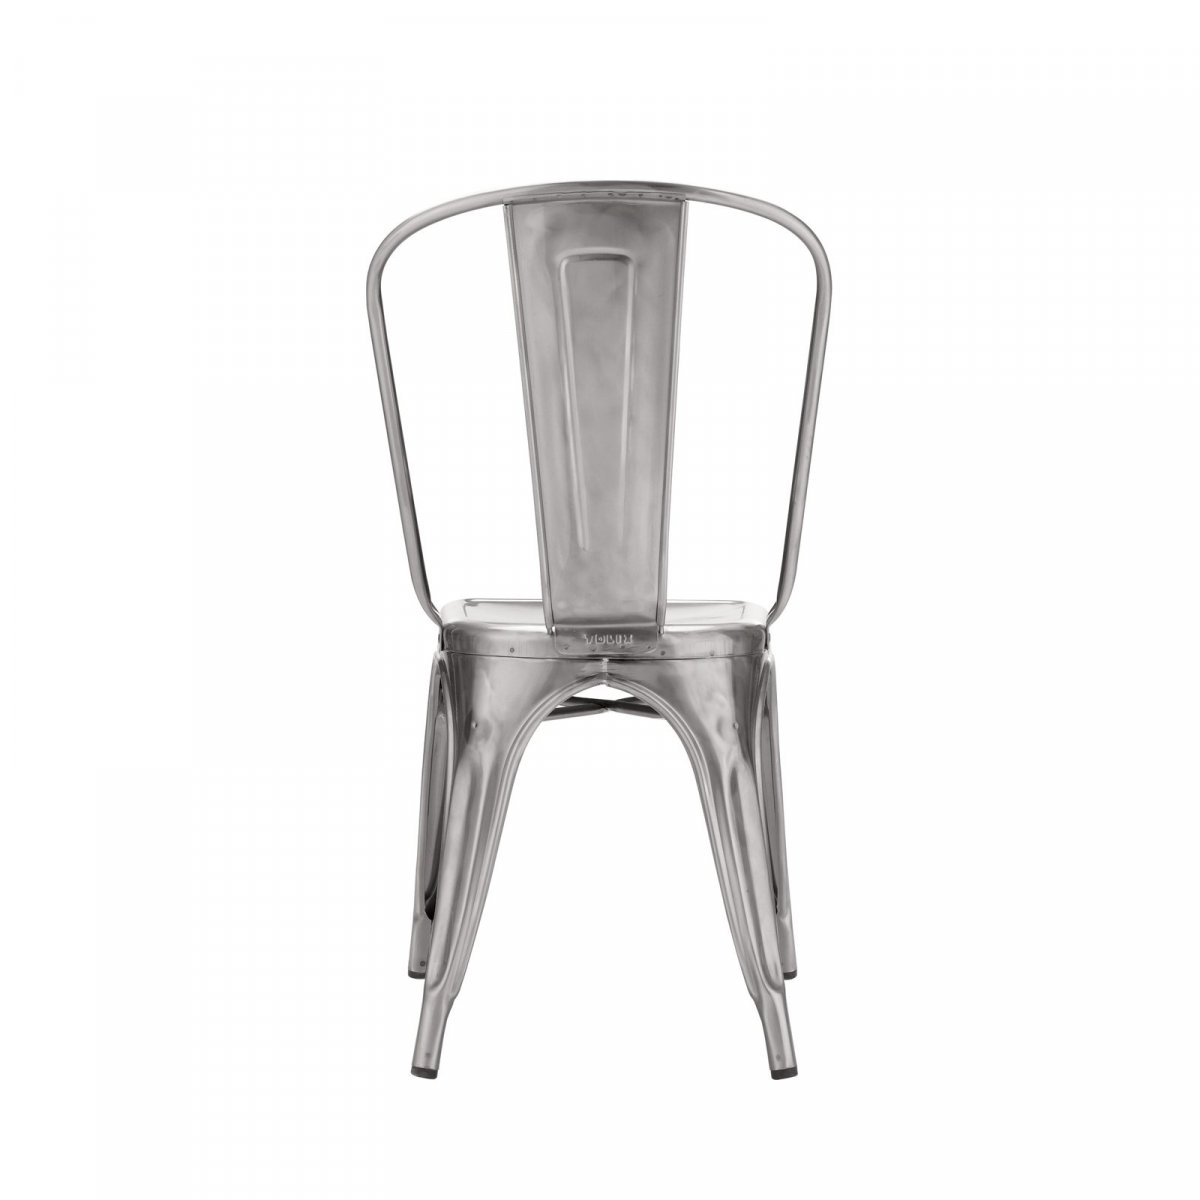 A Chair, back view.